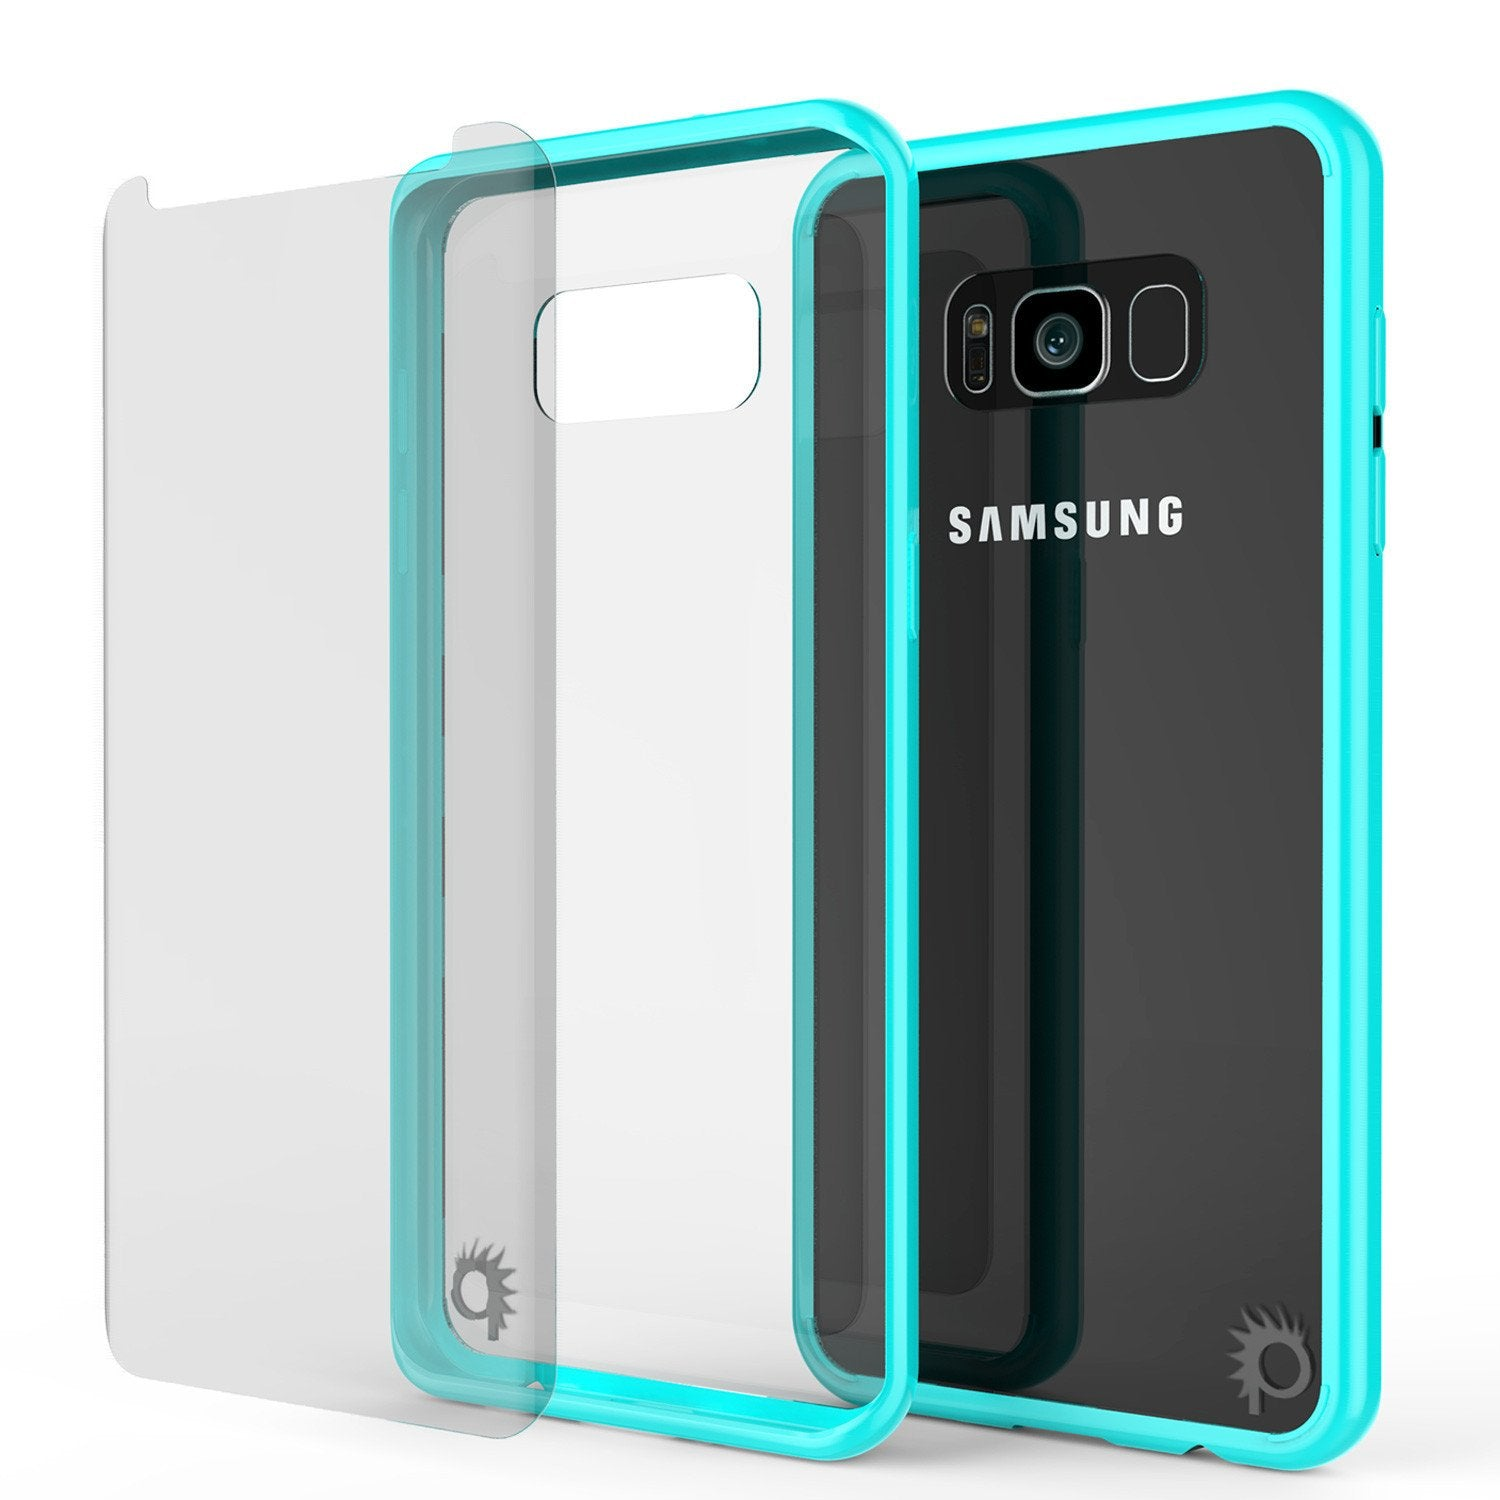 S8 Plus Case Punkcase® LUCID 2.0 Teal Series w/ PUNK SHIELD Screen Protector | Ultra Fit - PunkCase NZ